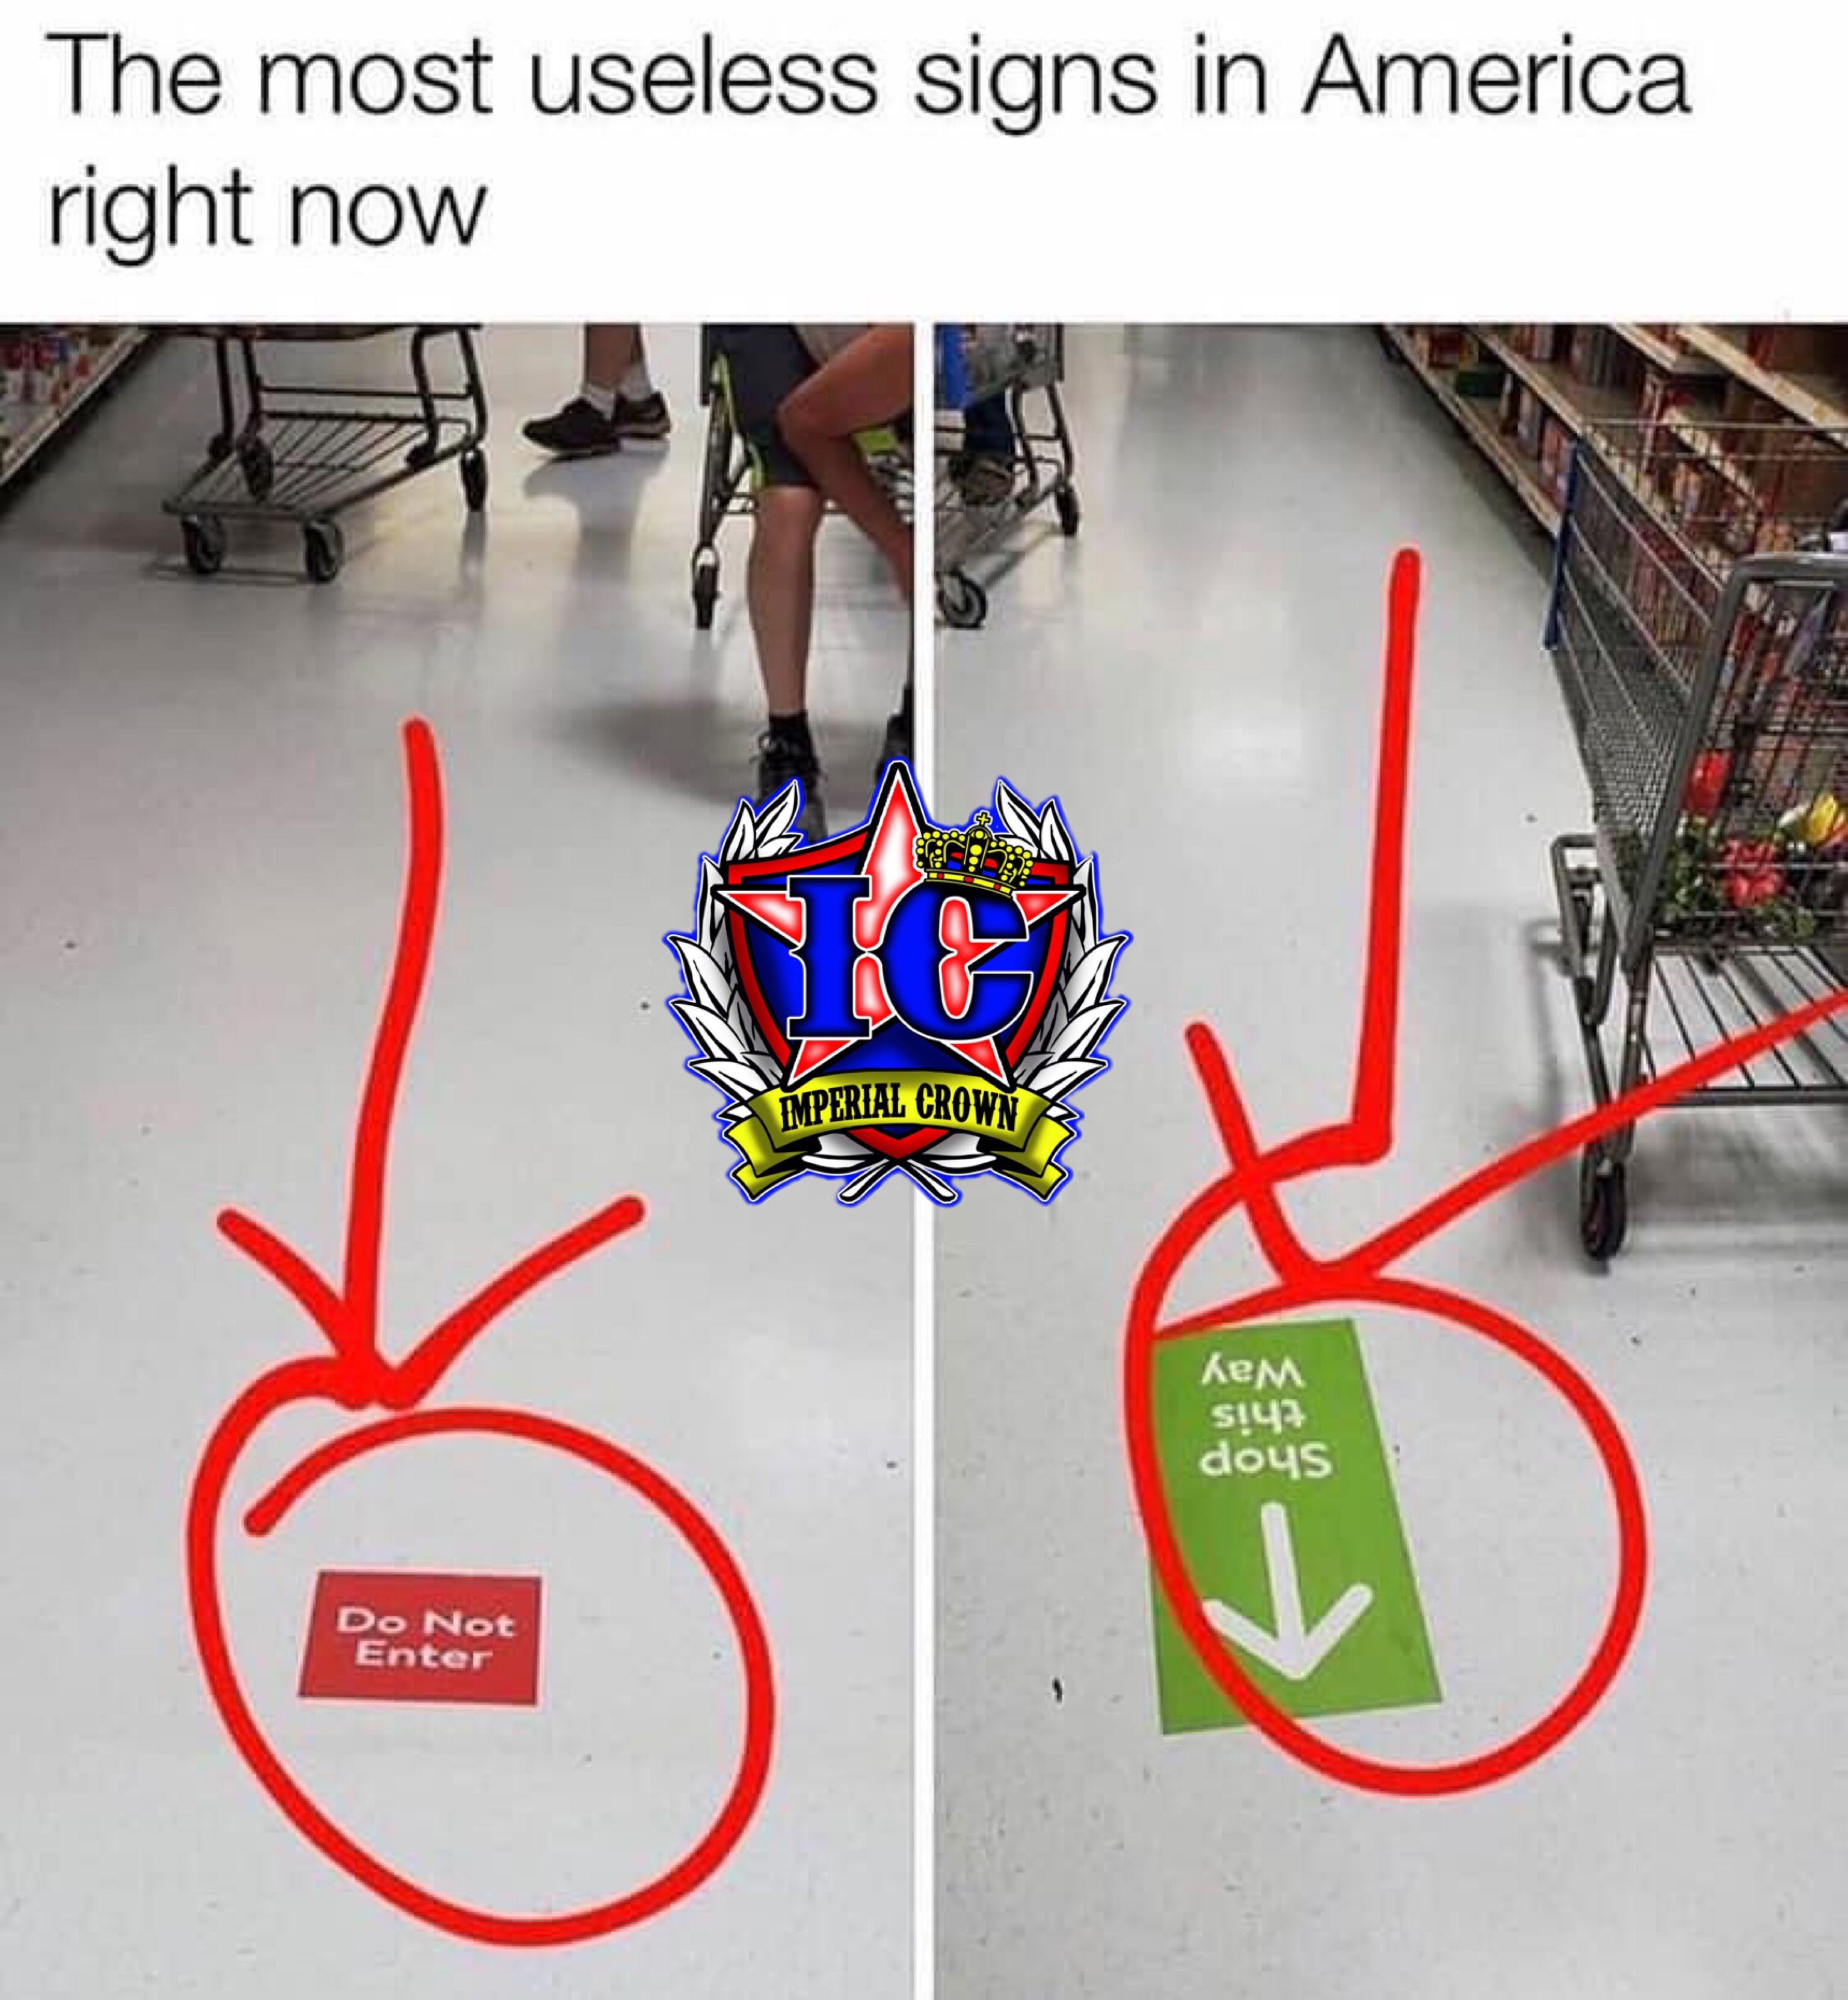 The most useless signs in America right now